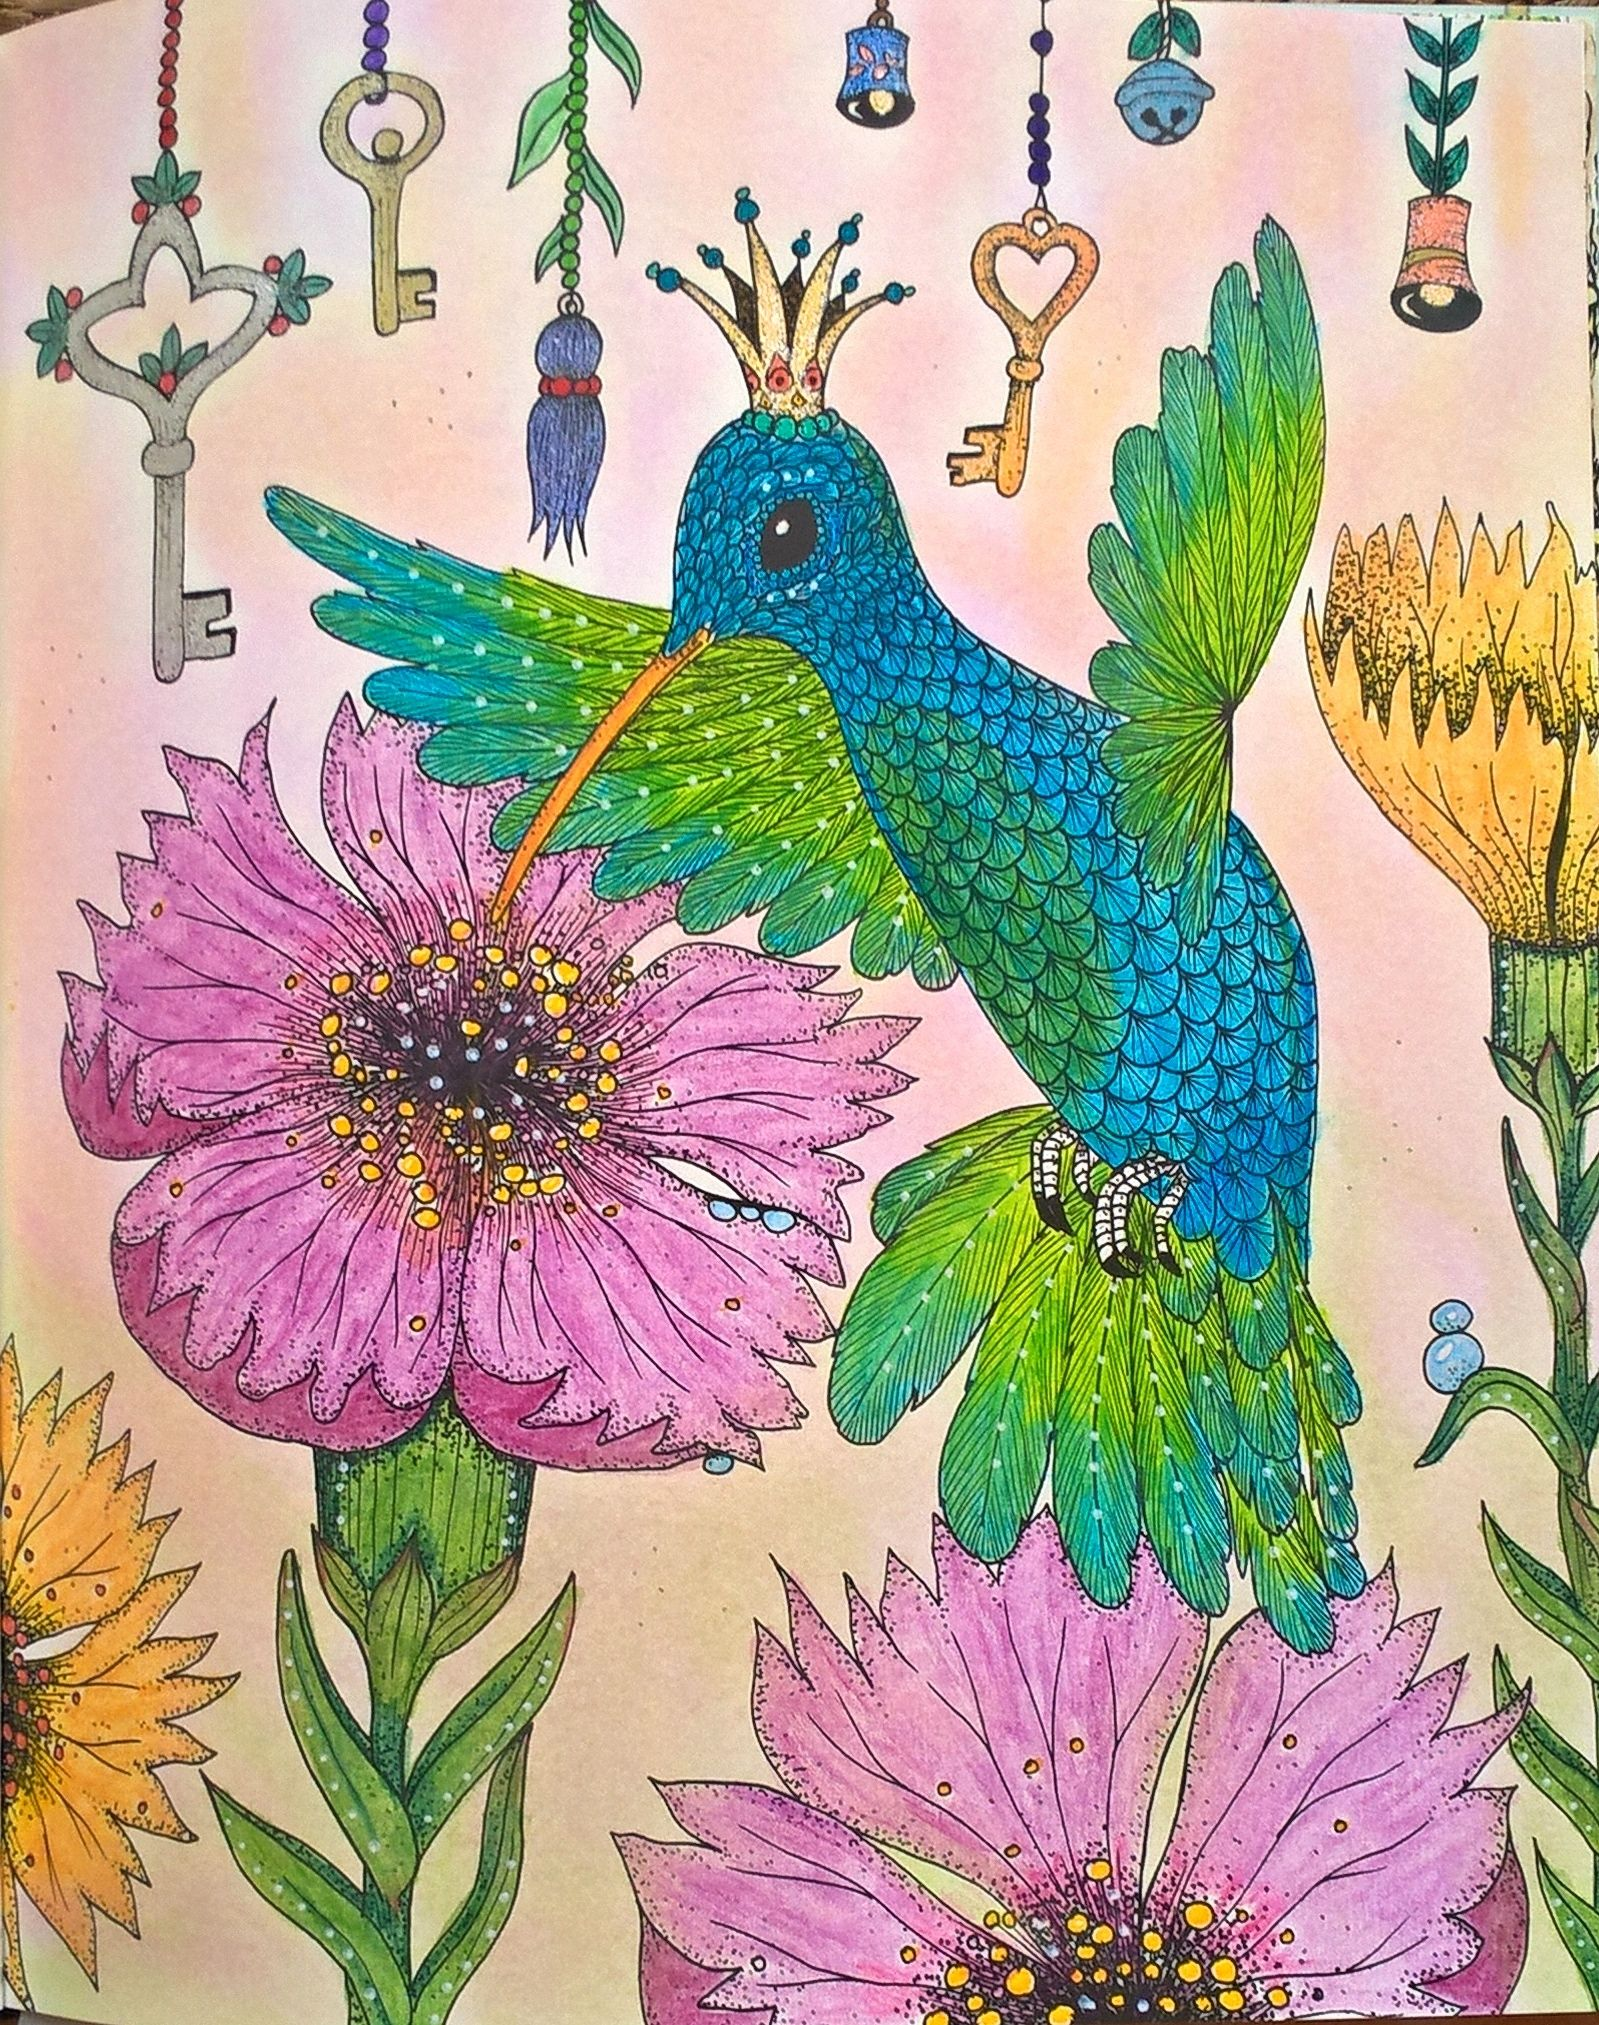 Pin On My Colouring Magical Delights Carovne Lahodnosti